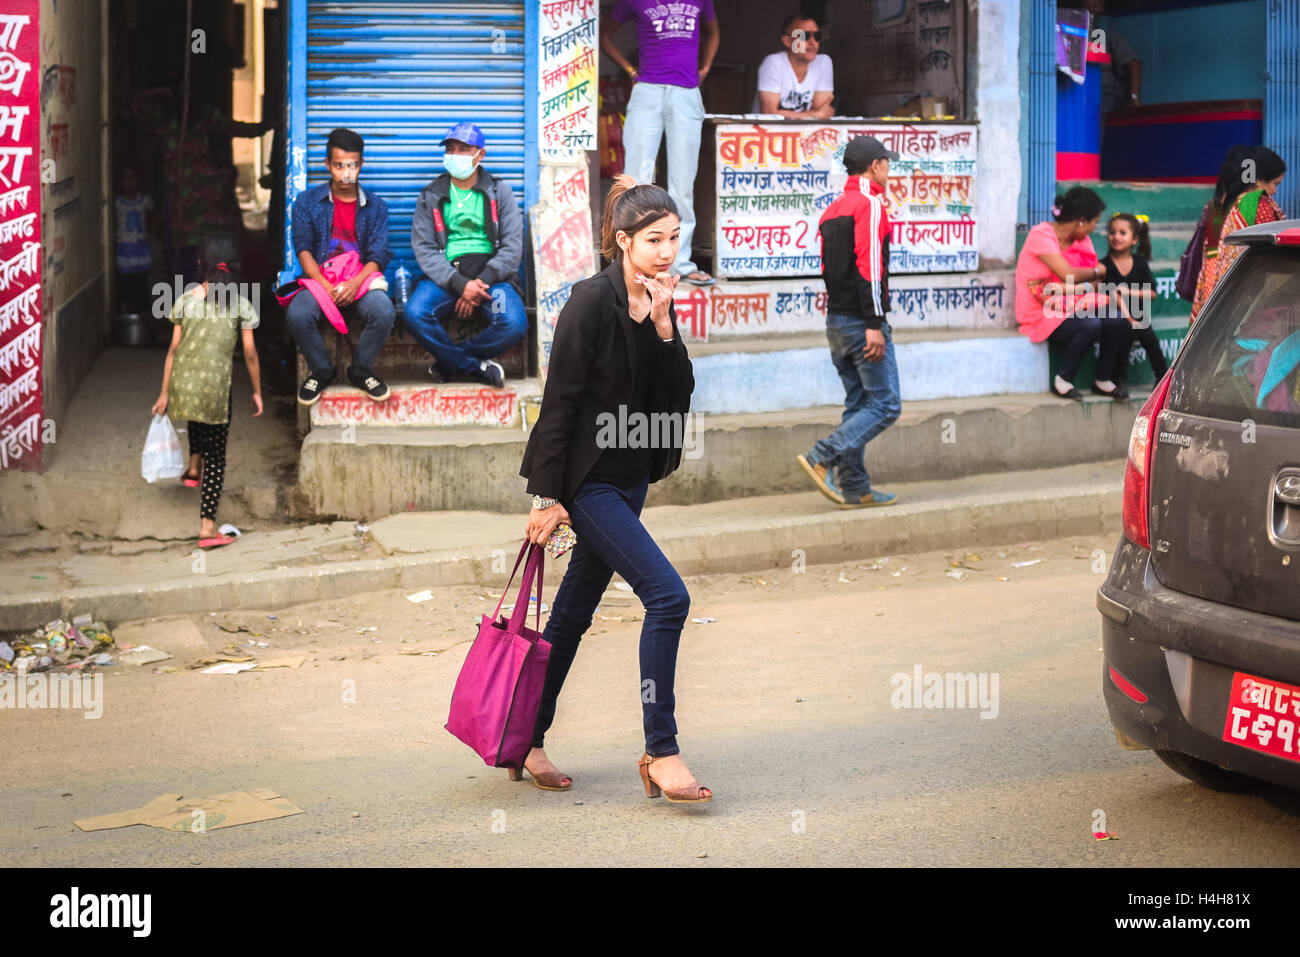 Young Nepali woman in casual fashion style crossing a street in the outskirts of Kathmandu, Nepal. - Stock Image